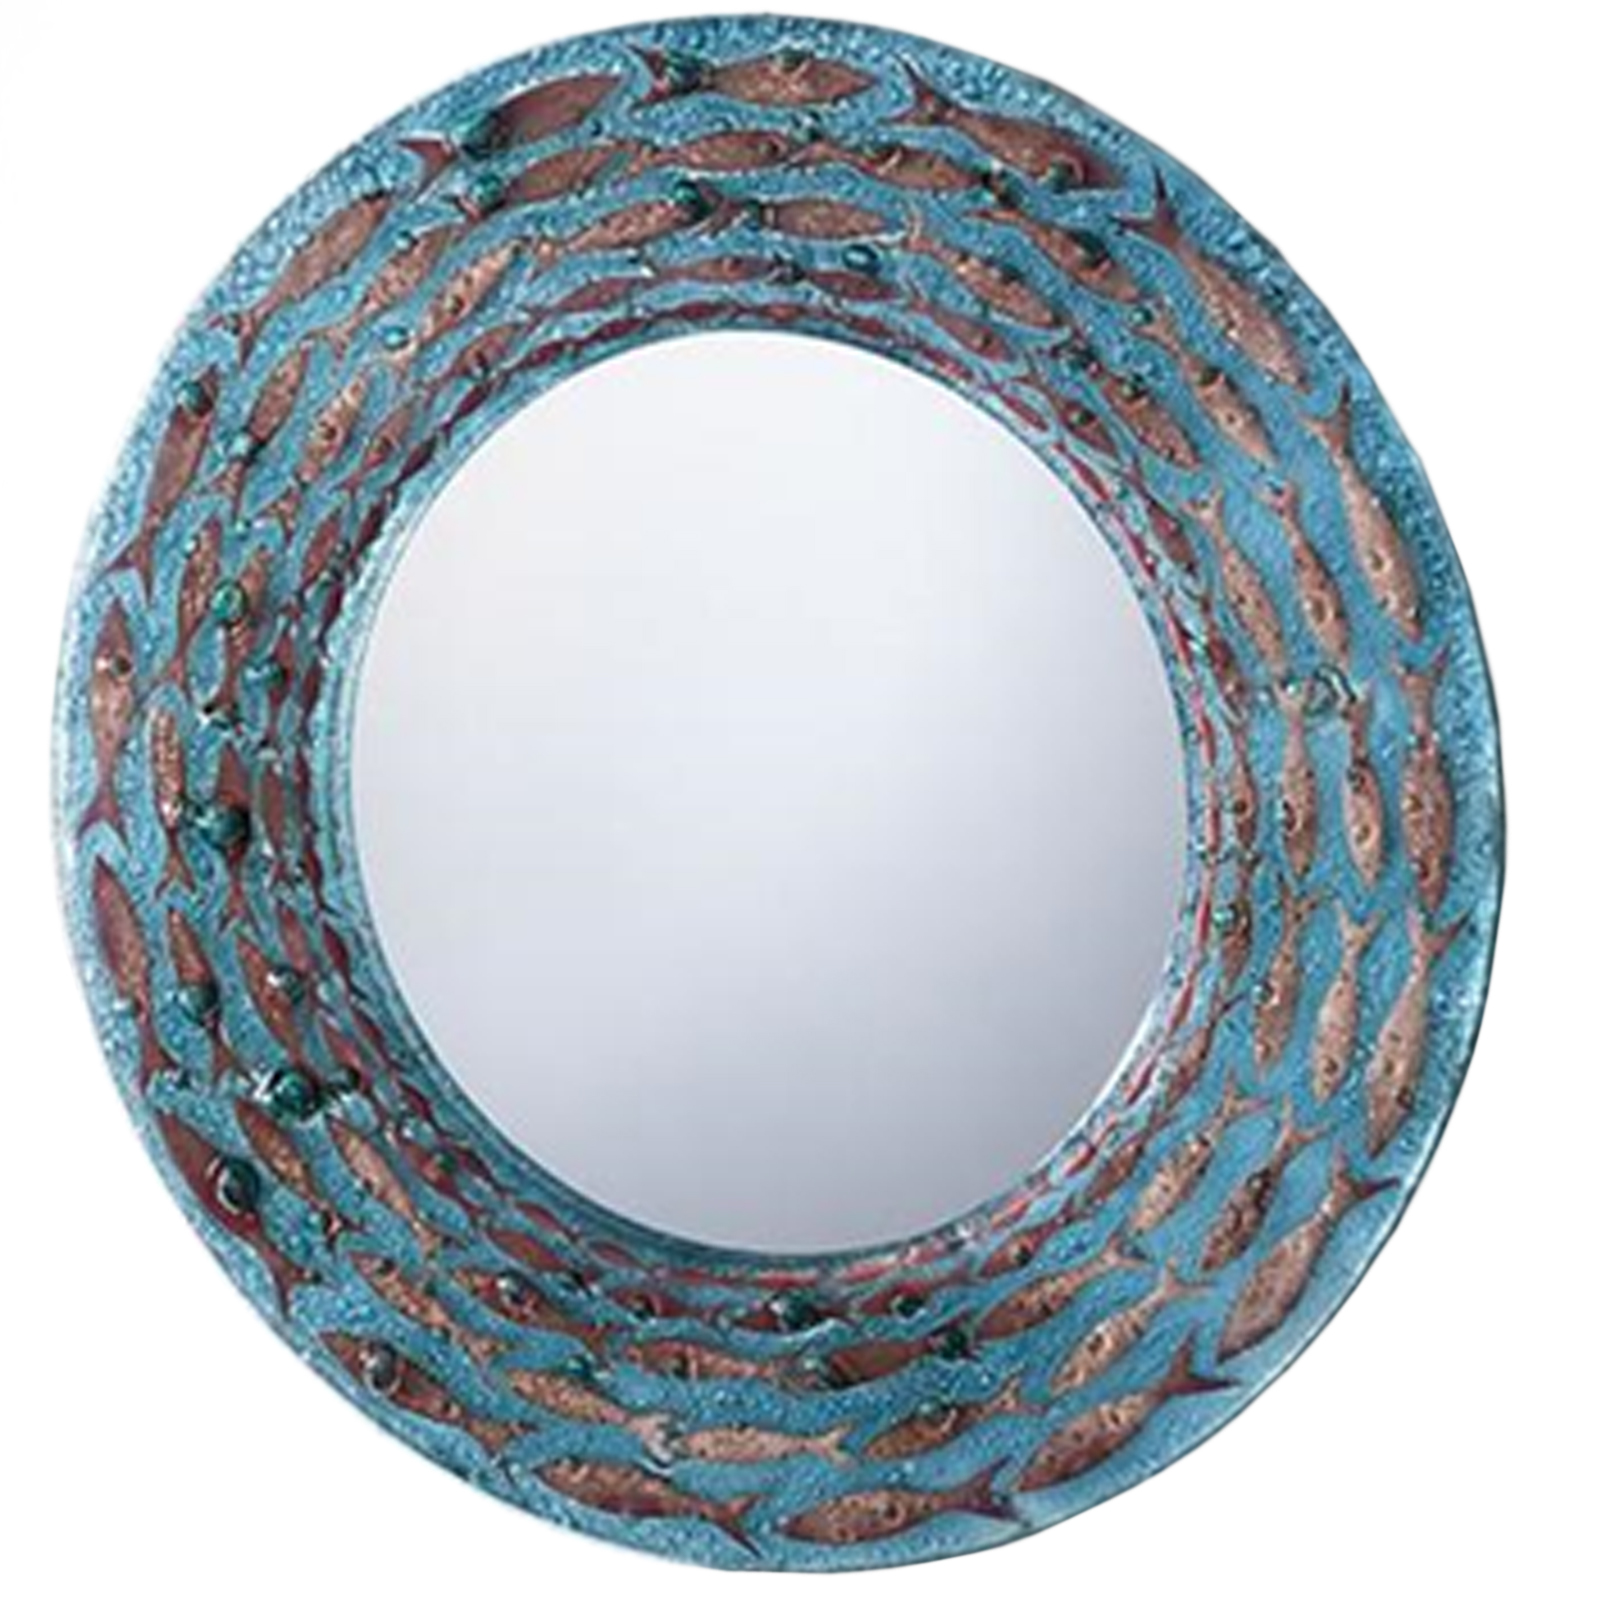 Mirror - Cornish Pilchards Design by Jo Downs